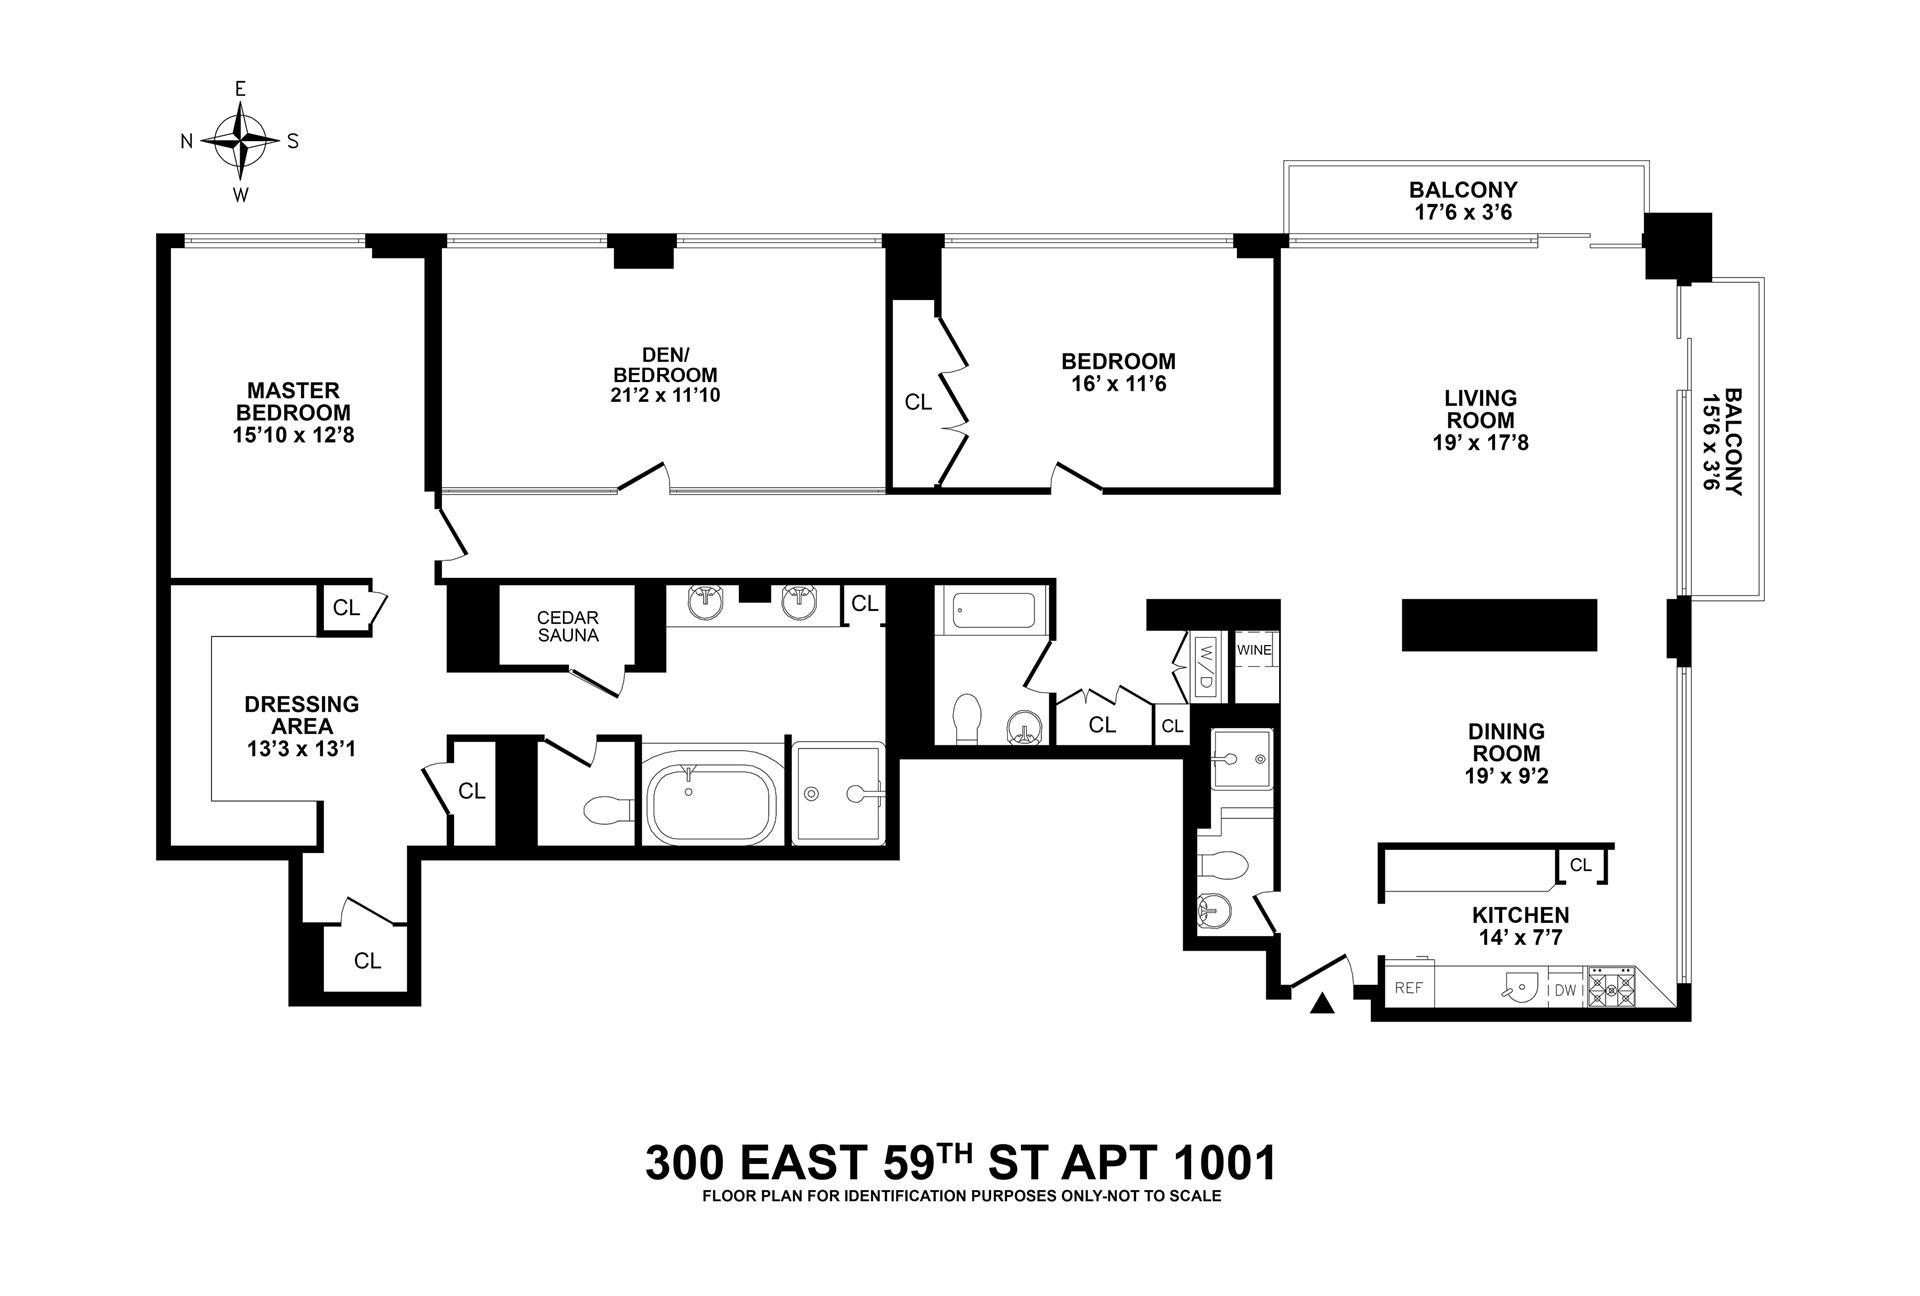 Floor plan of 300 East 59th St, 1001 - Upper East Side, New York